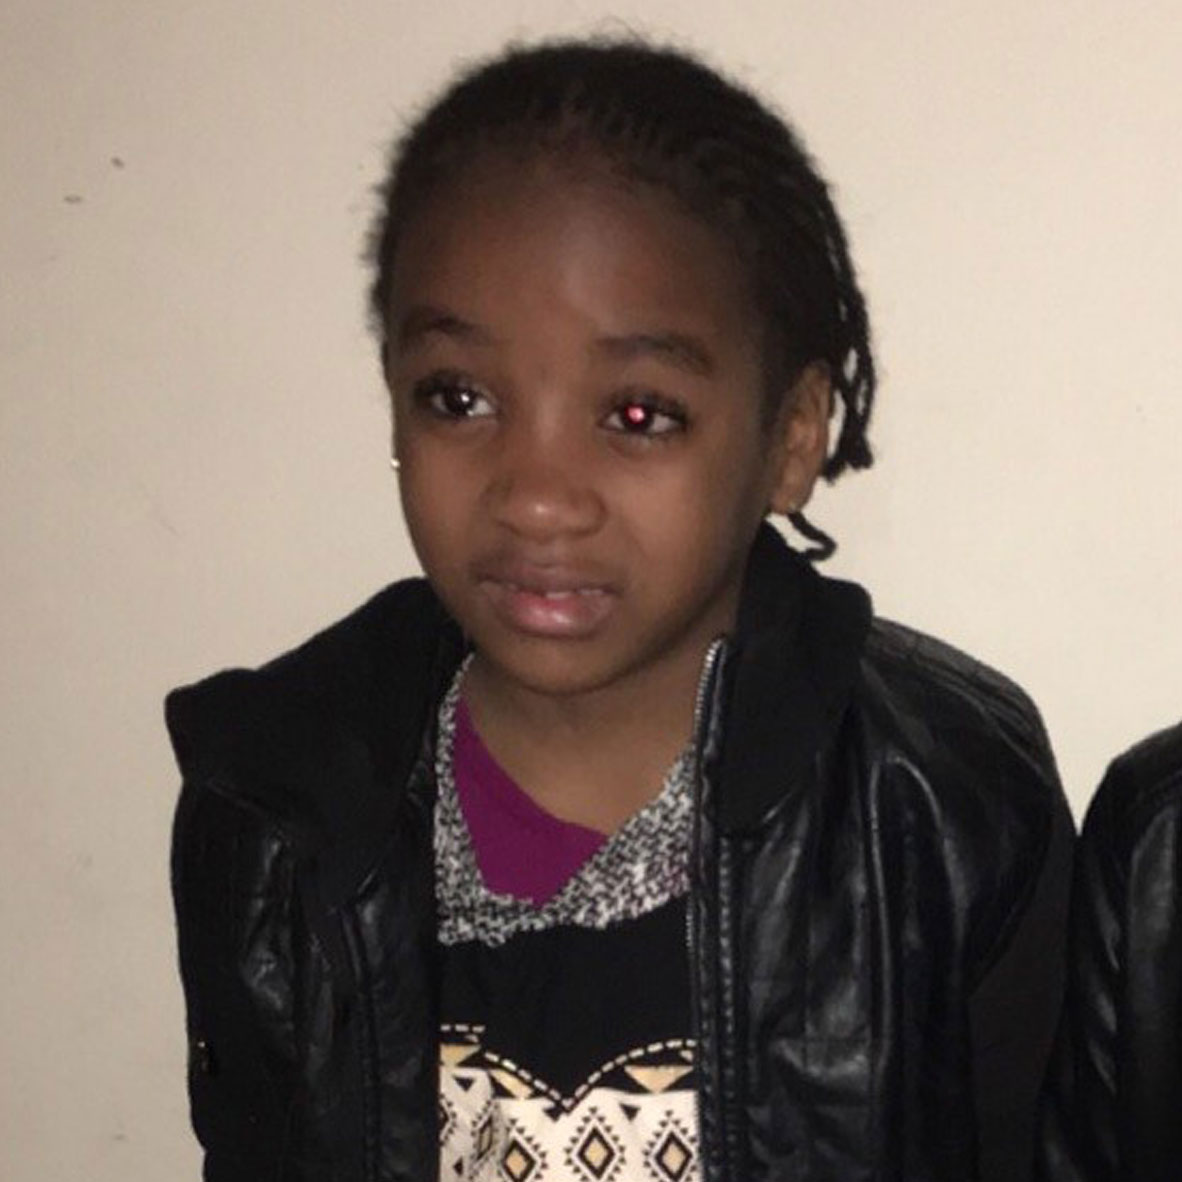 <div class='meta'><div class='origin-logo' data-origin='WABC'></div><span class='caption-text' data-credit=''>7-year-old Kelesha &#34;Kelly&#34; Francis</span></div>